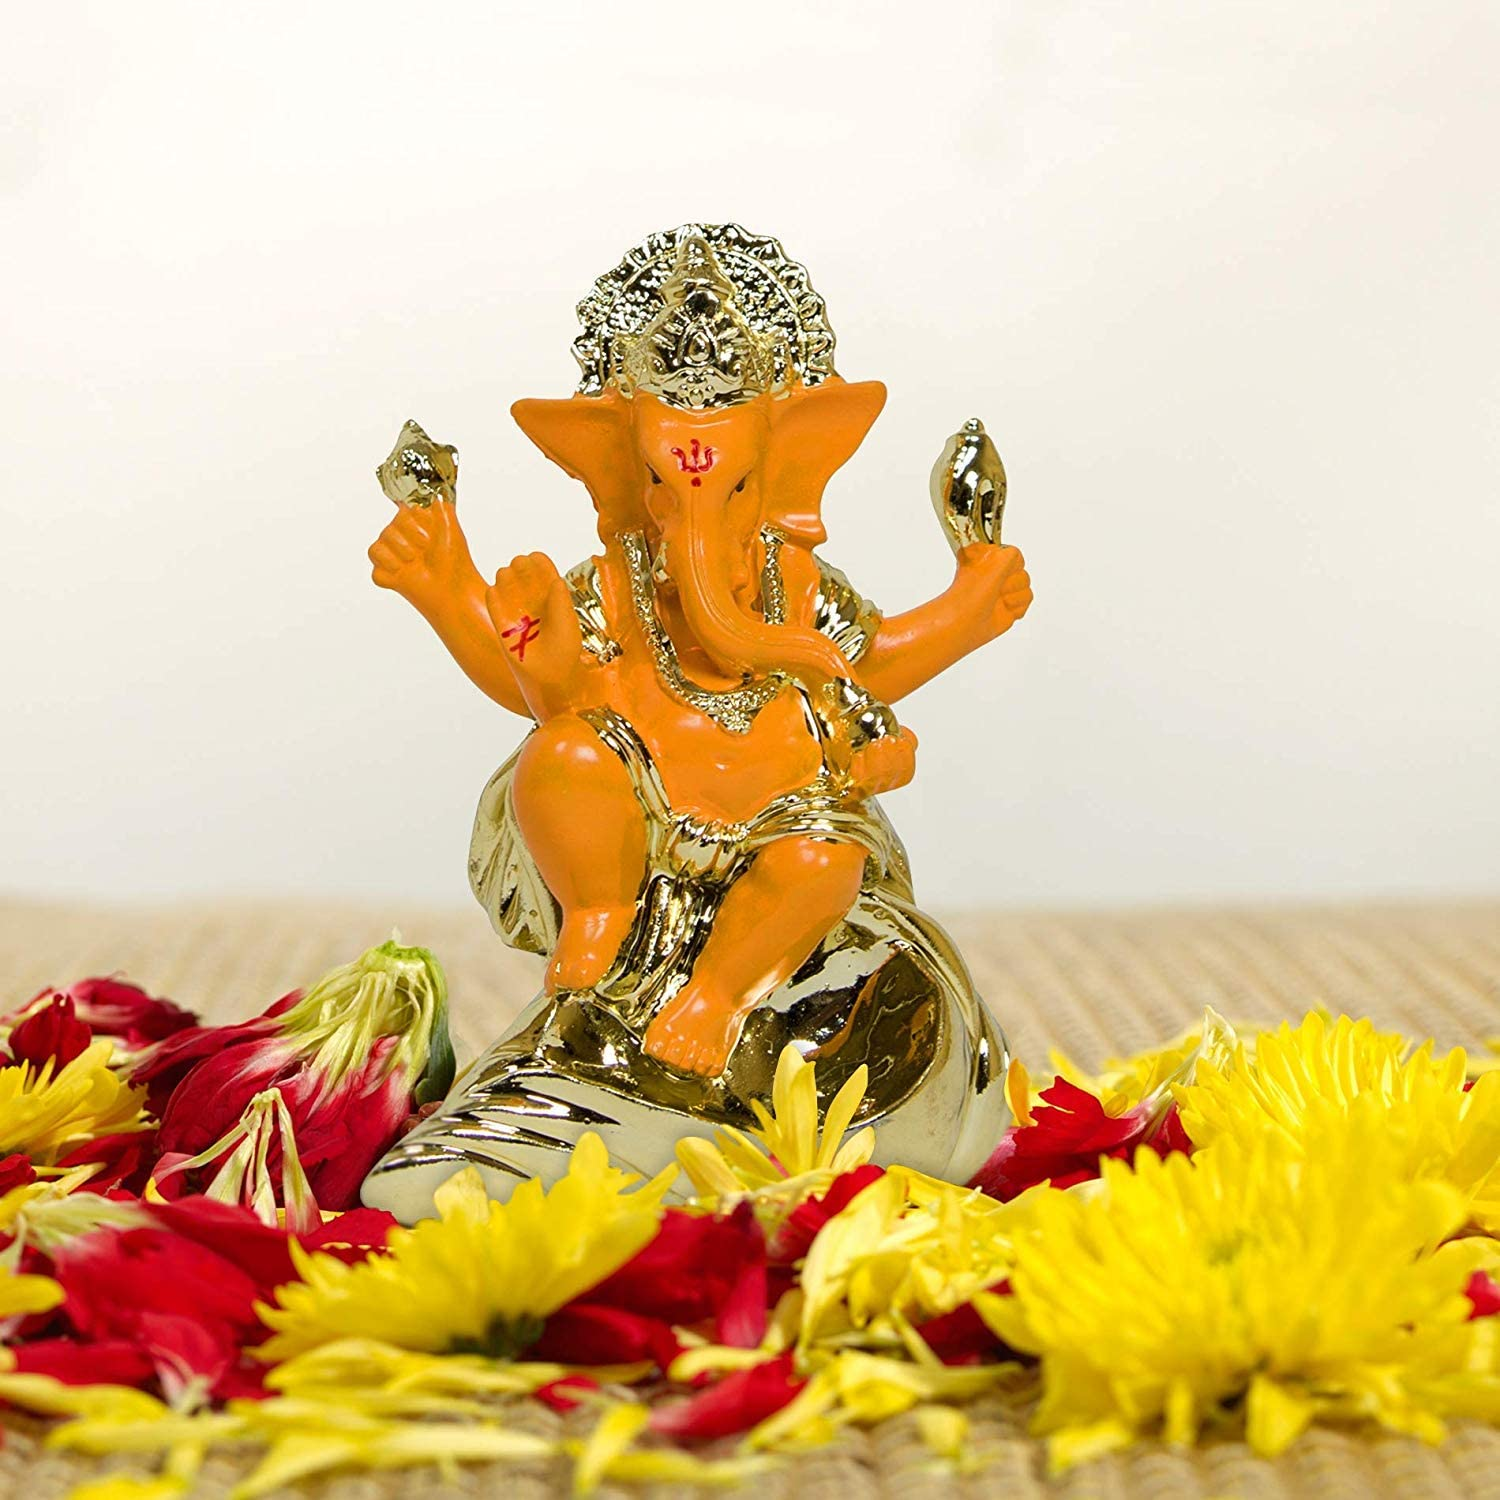 TIED RIBBONS Gold Plated Ganesh Statue (3 inch x 2.3 inch, Orange) - Ganesh Idol for Home Décor car Dashboard